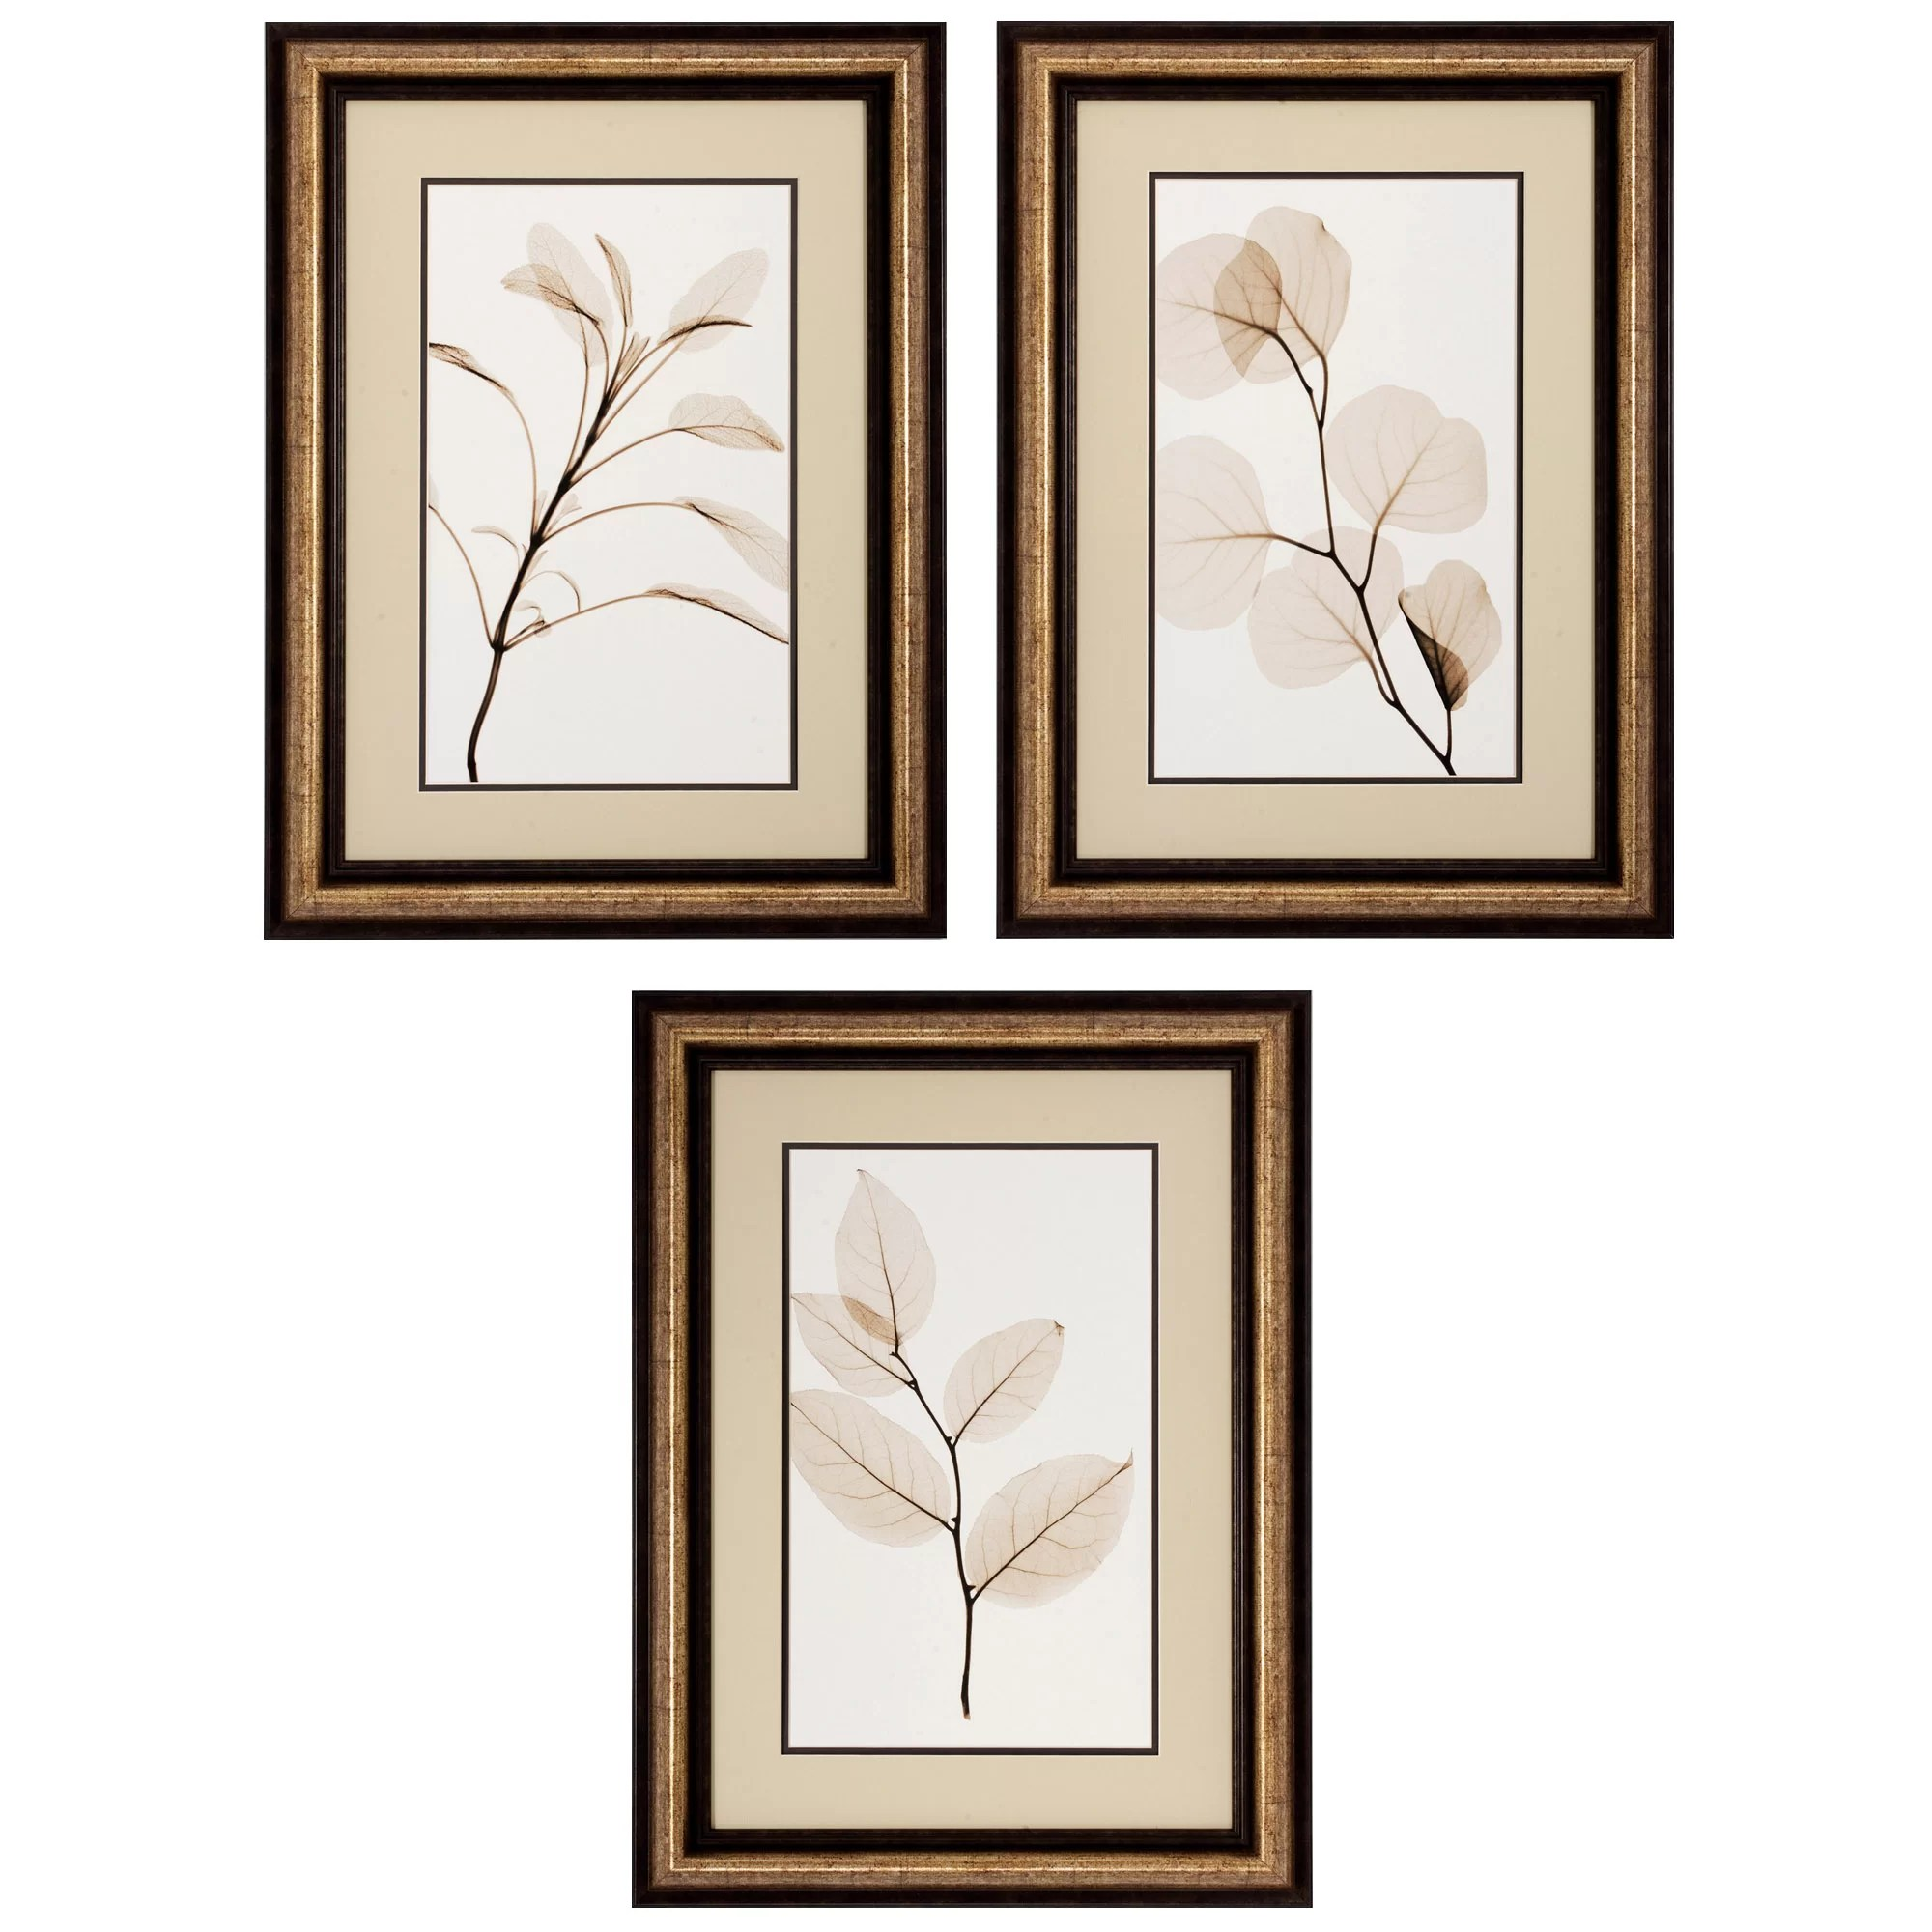 Framed Wall Art Sets Of 3 Propac Images Sage Salal Eucalypt 3 Piece Framed Graphic